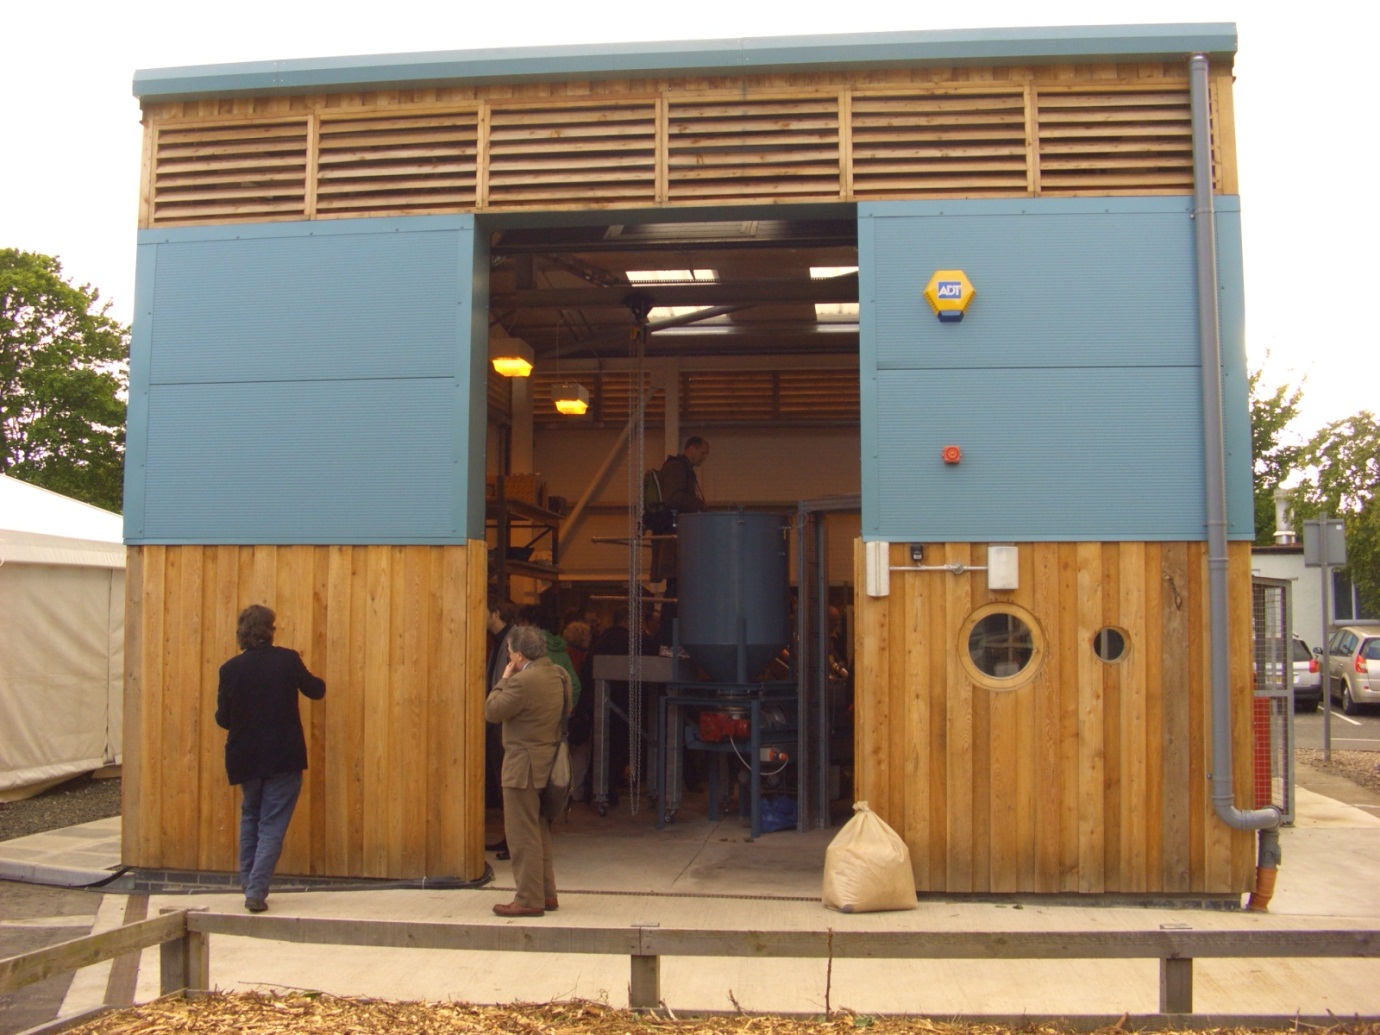 bespoke pyrolysis reactor at the UK Biochar Research Centre in Edinburgh